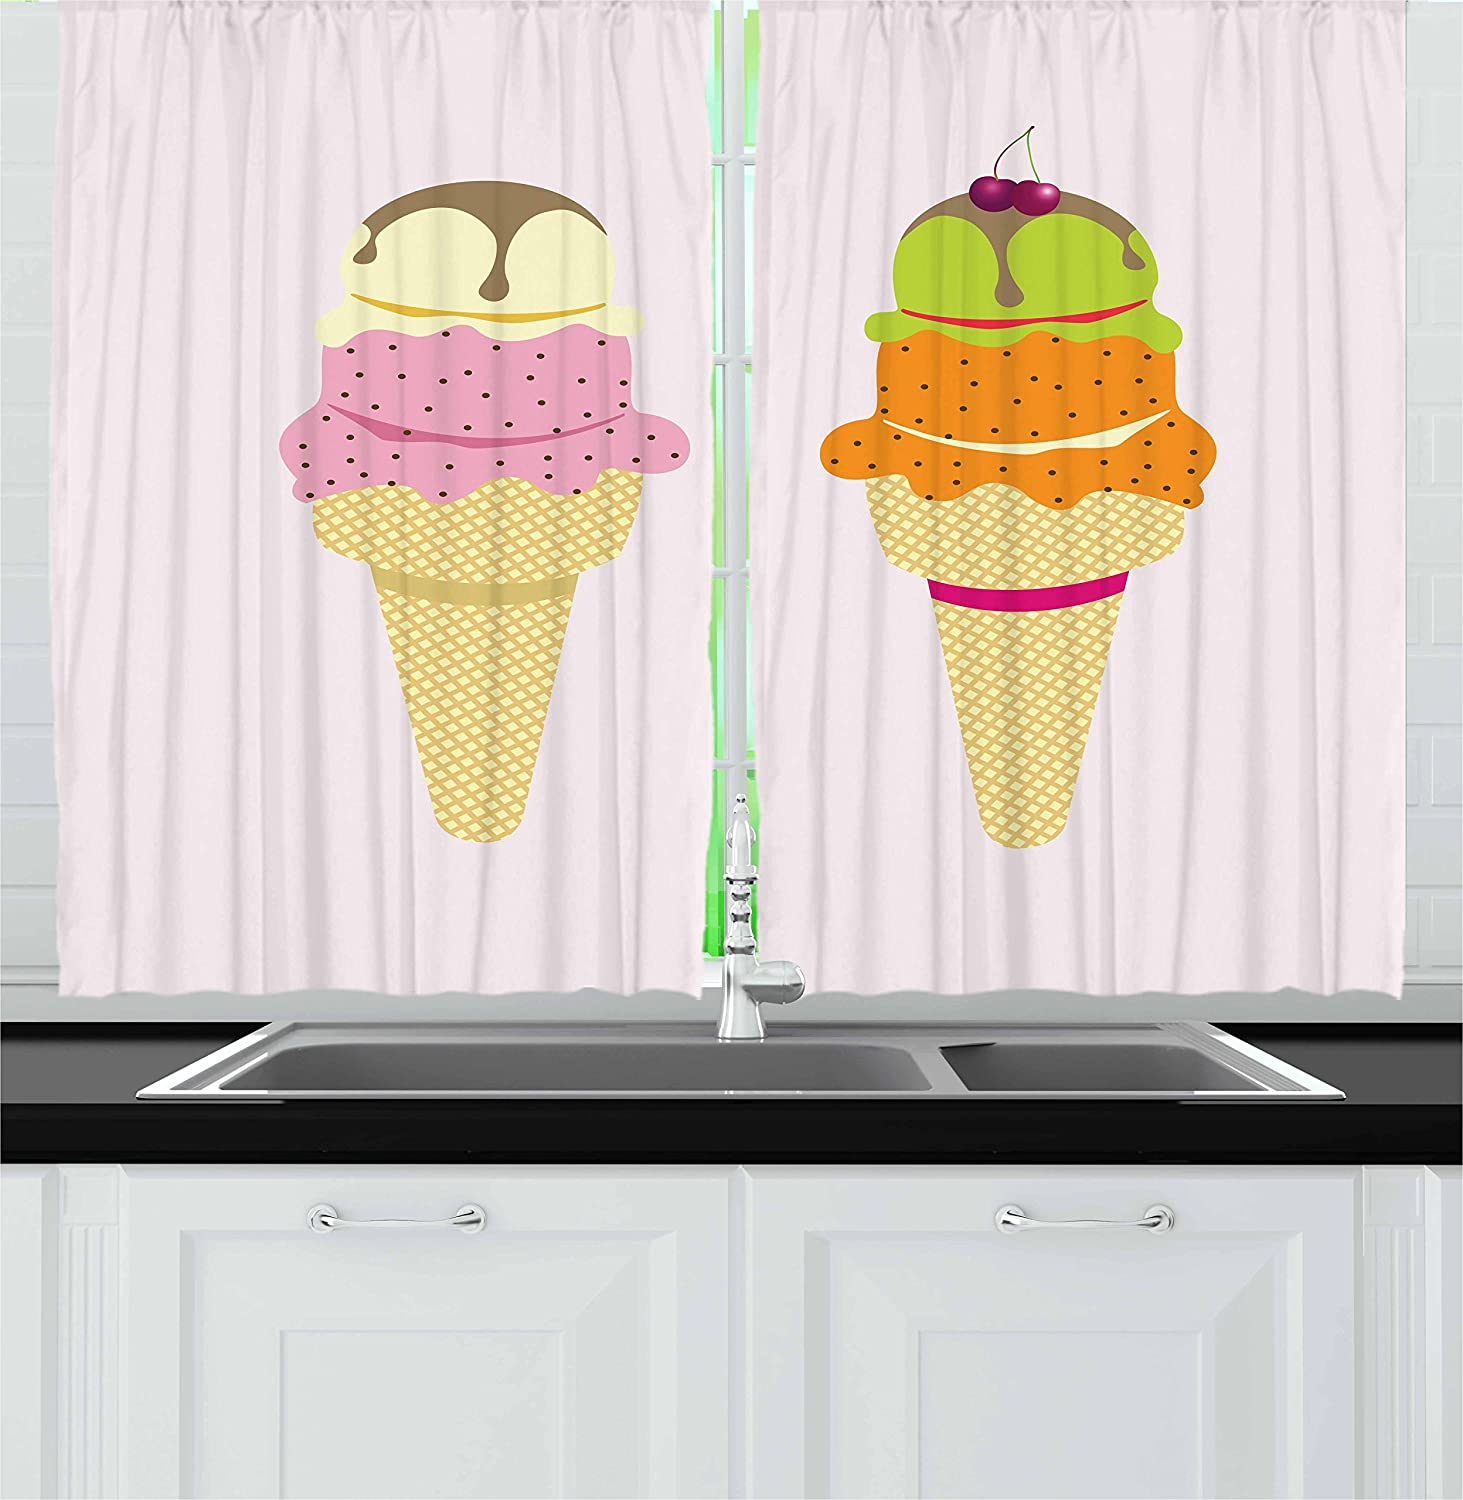 Lunarable Ice Cream Kitchen Curtains, Colorful Cones with Different Flavored Cold Desert Chocolate and Cherry on Top, Window Drapes 2 Panel Set for Kitchen Cafe Decor, 55